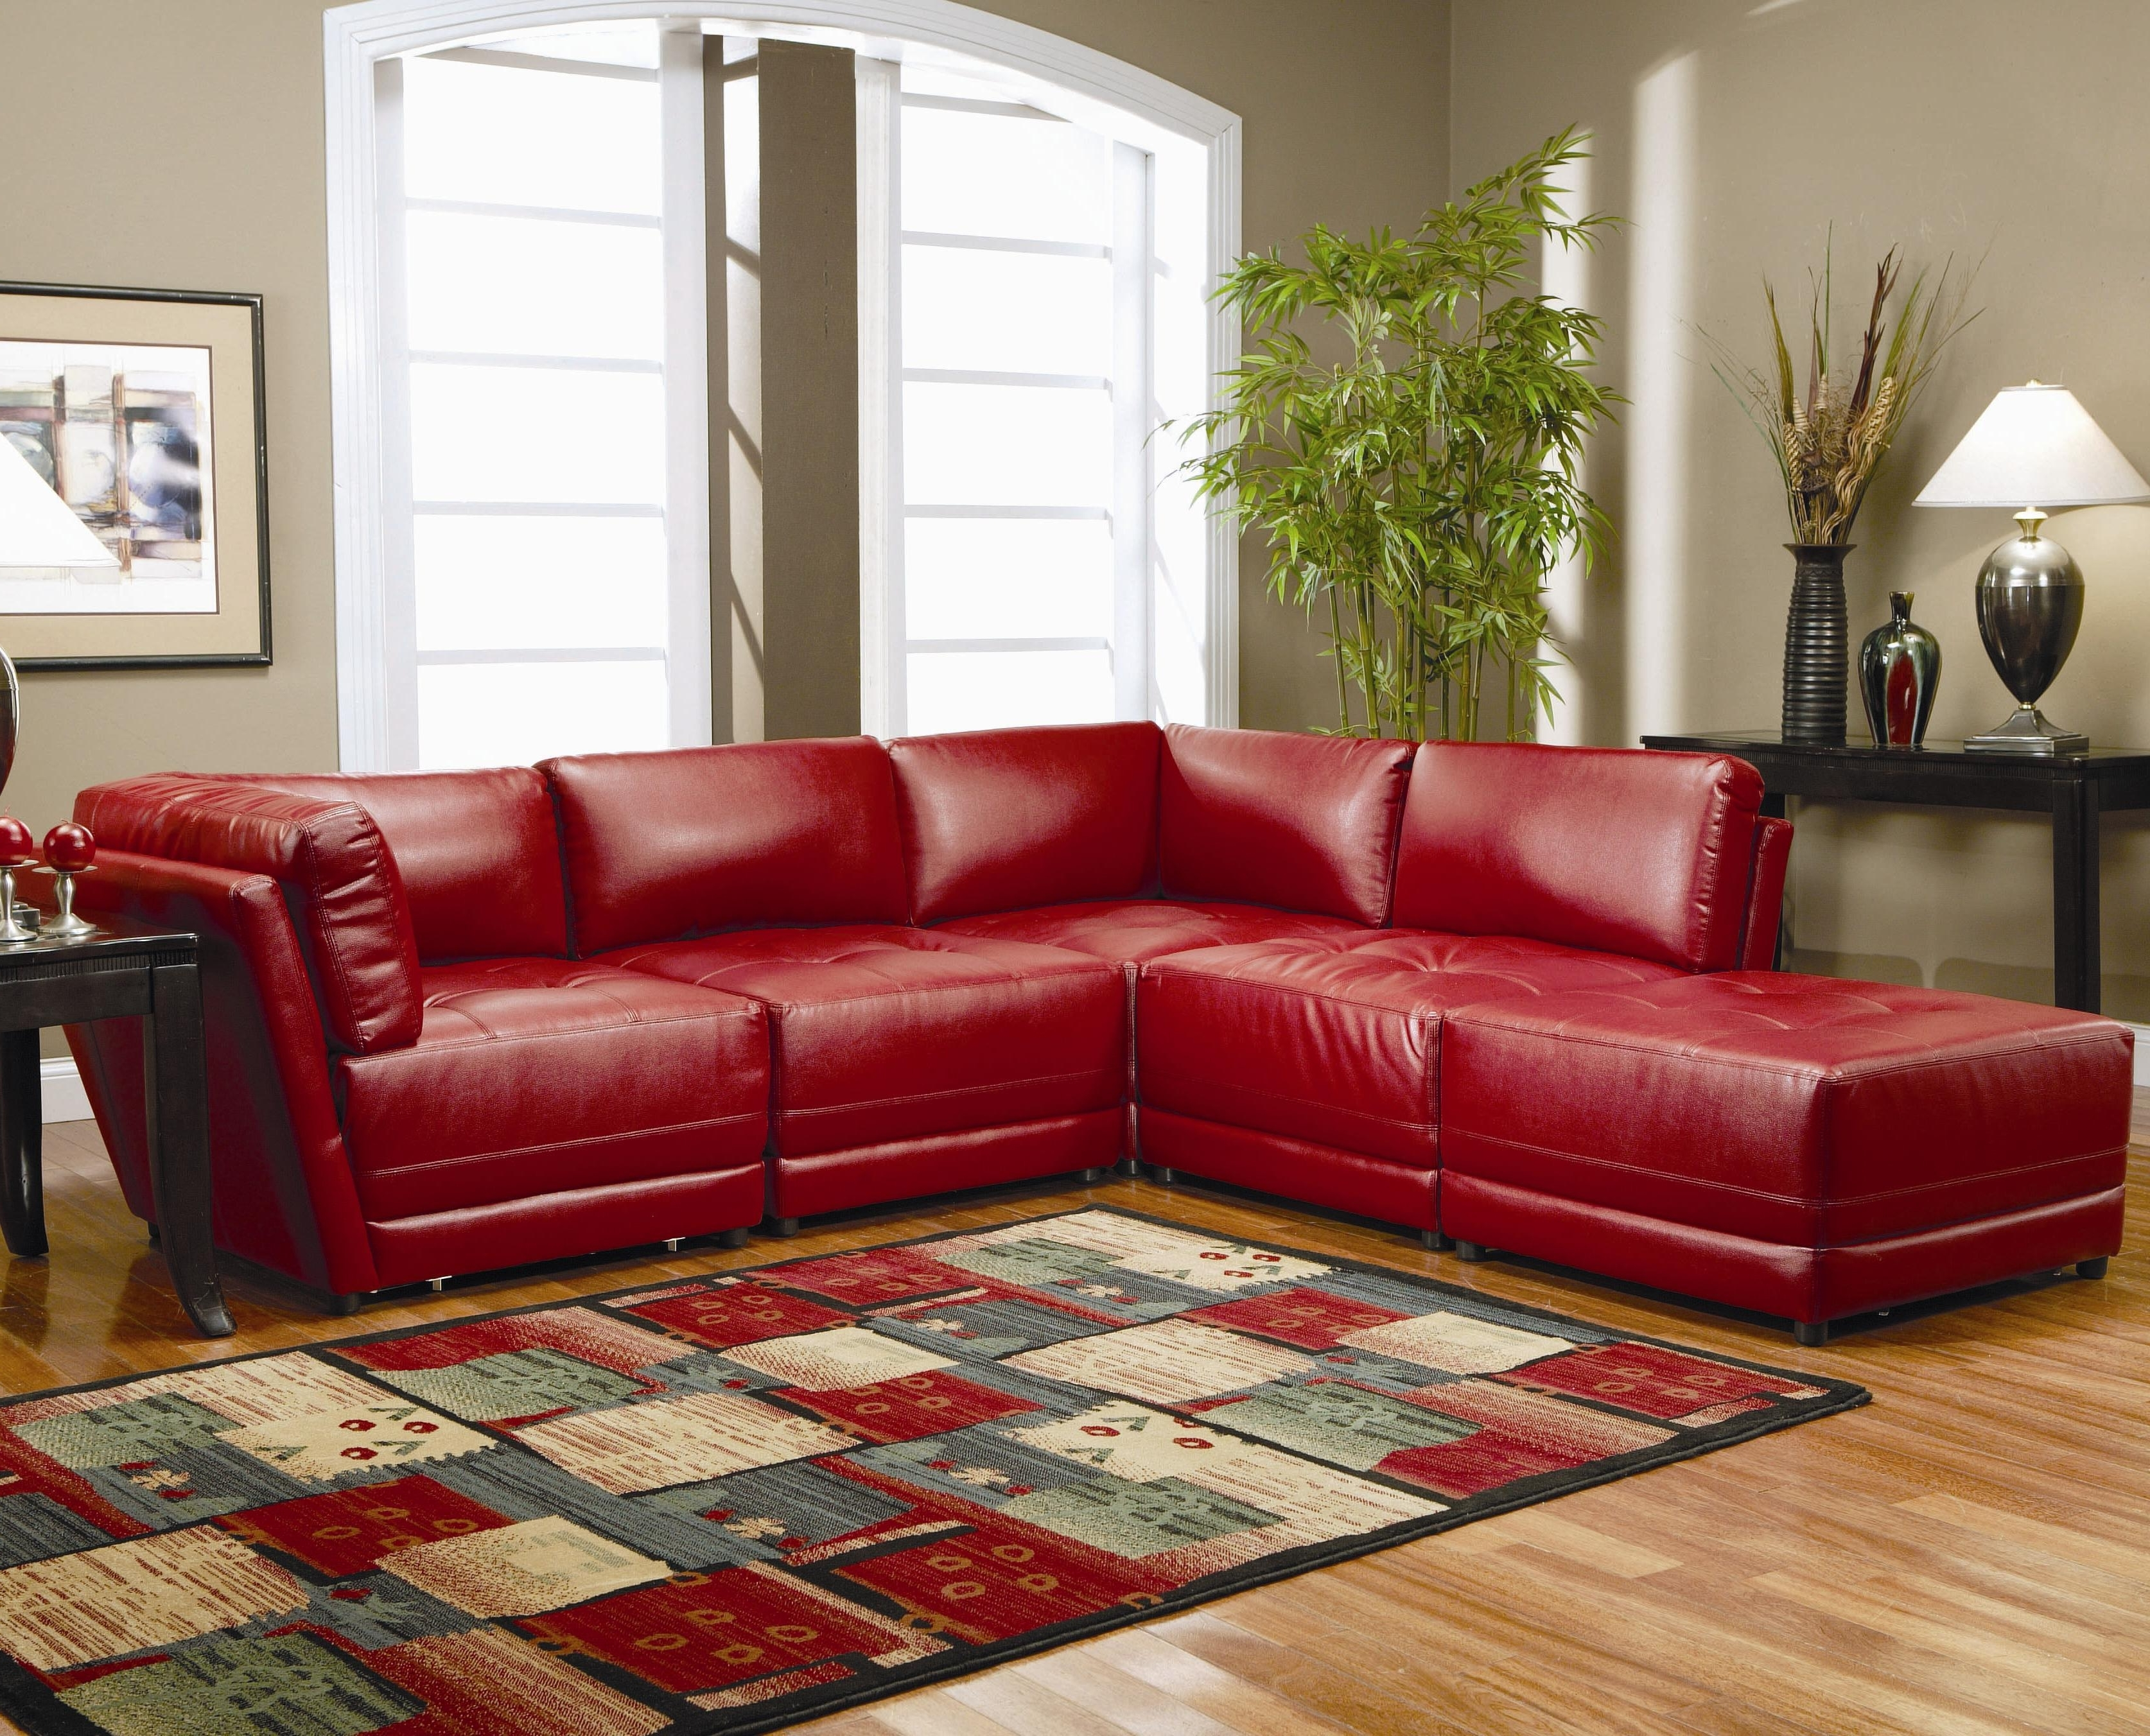 Latest Red Faux Leather Sectionals Intended For Warm Red Leather Sectional L Shaped Sofa Design Ideas For Living (View 3 of 15)